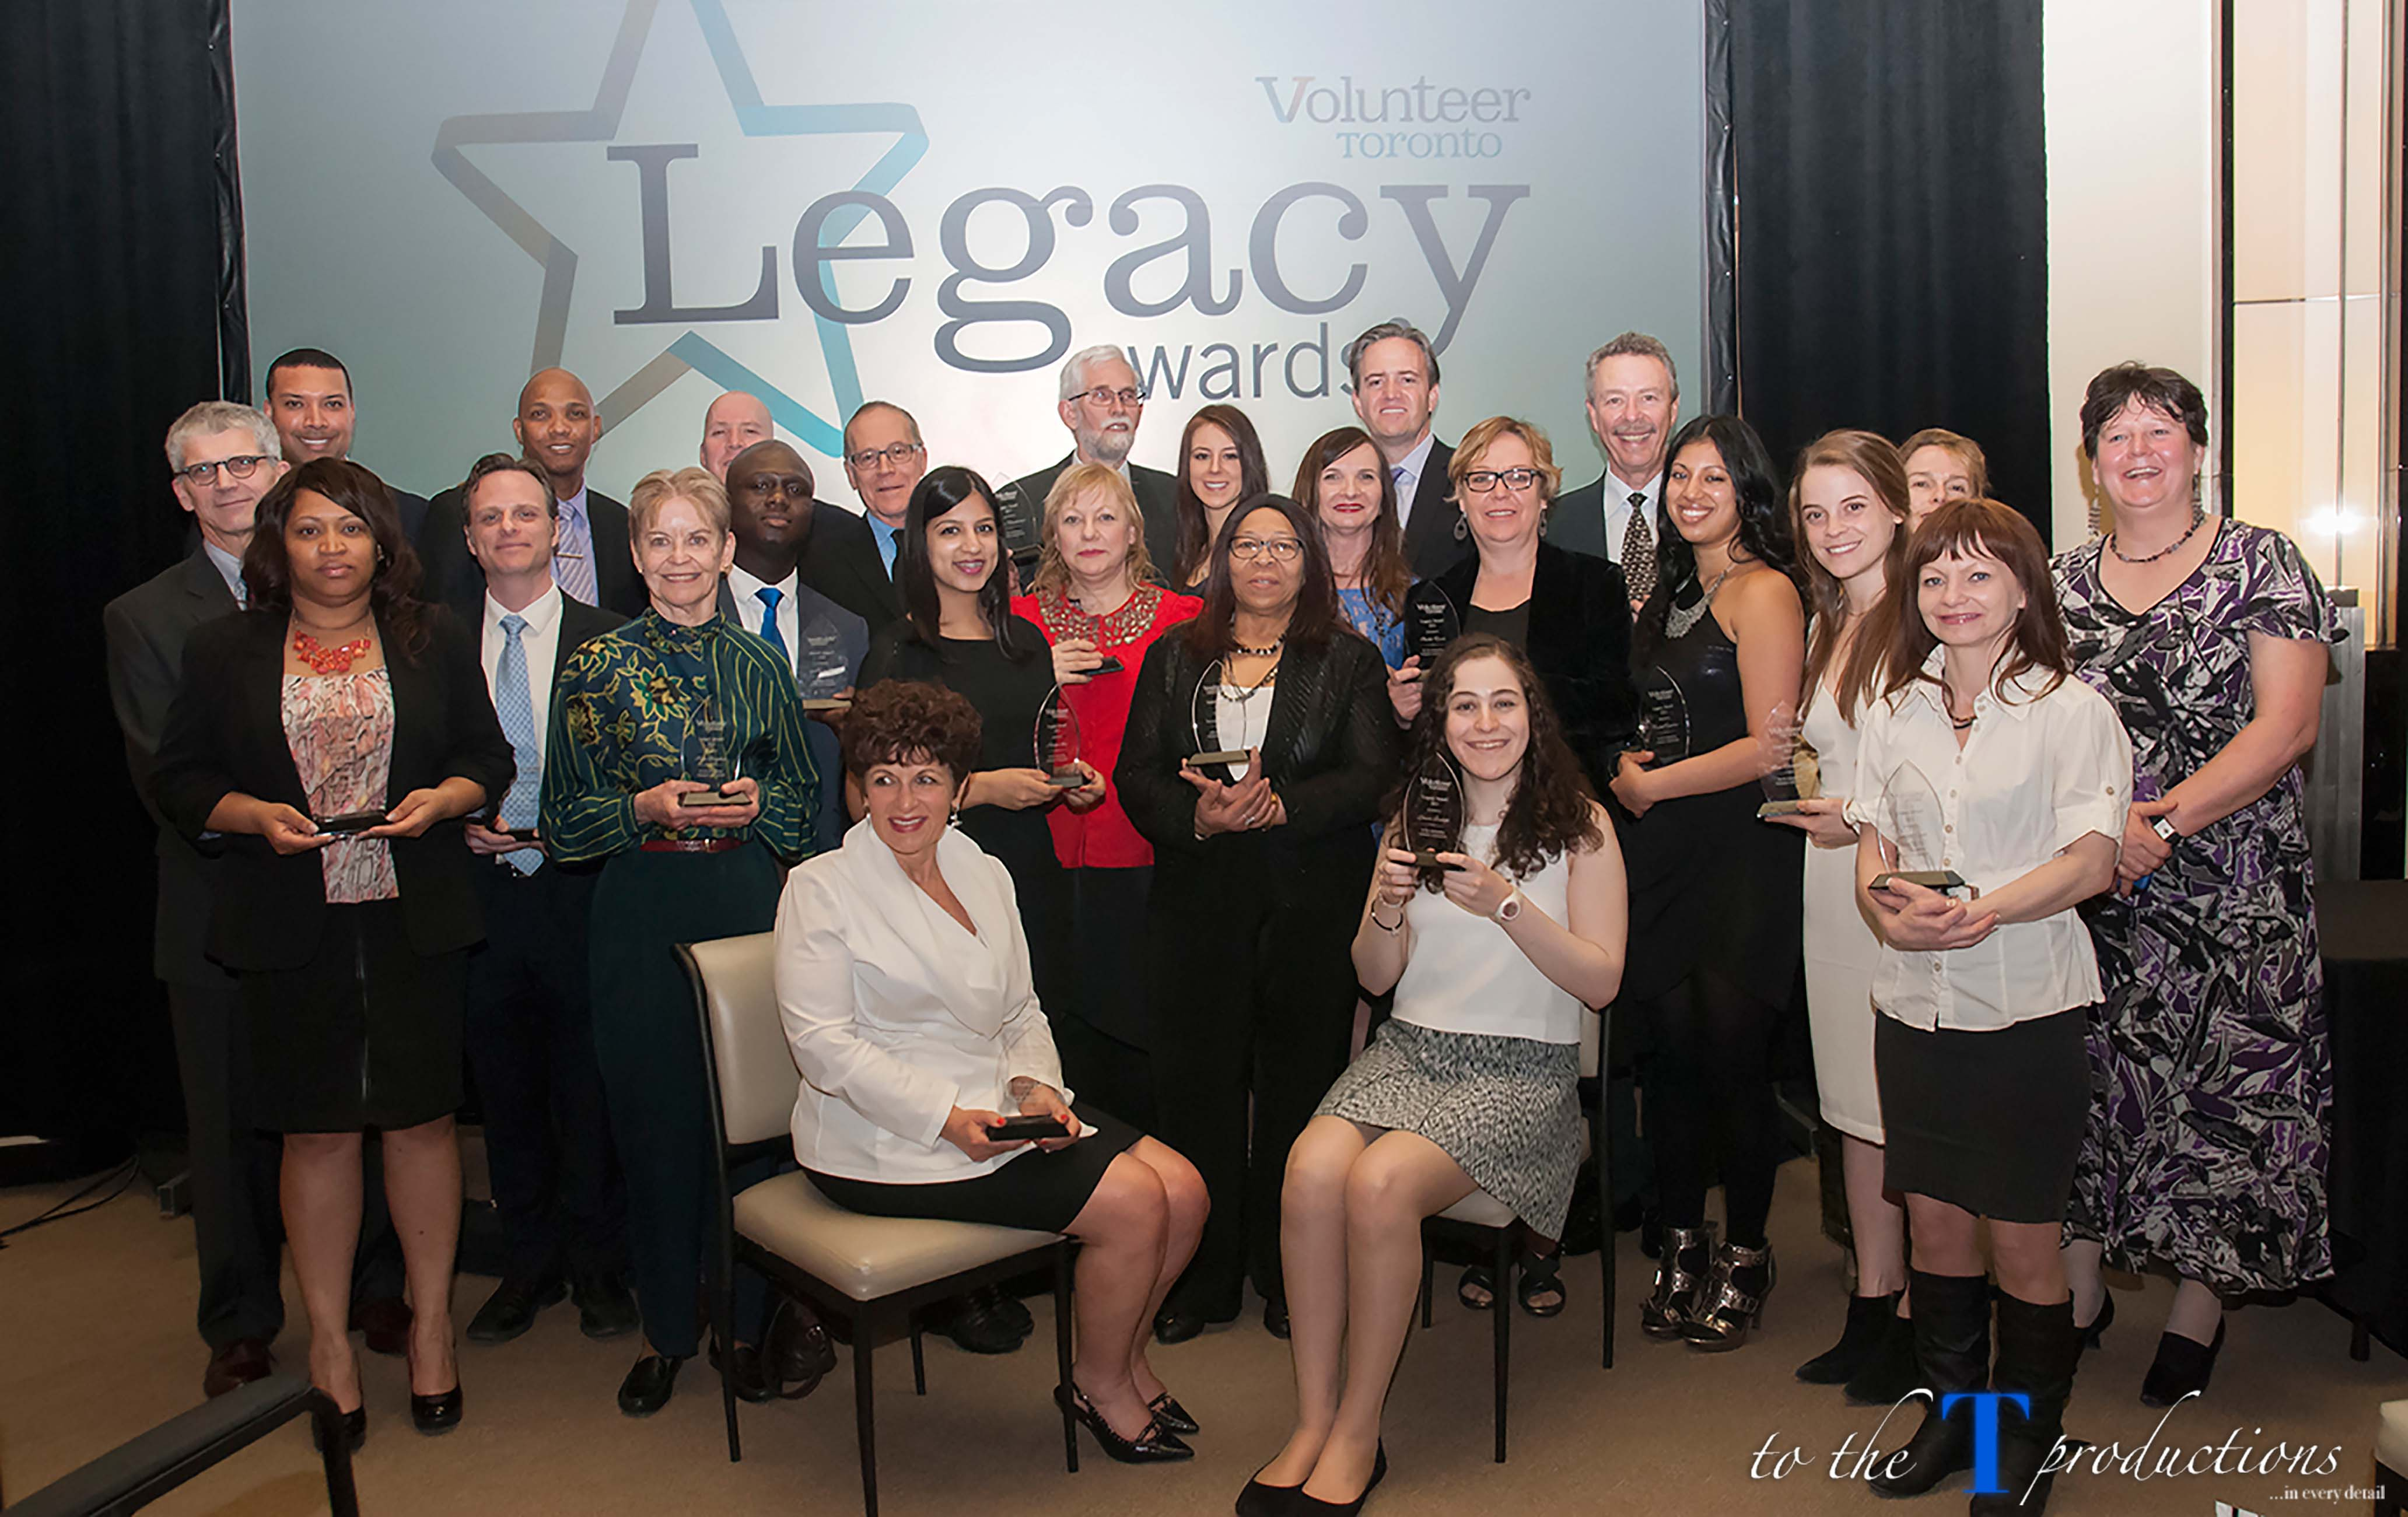 Group photo of the 2015 Legacy Award Winners